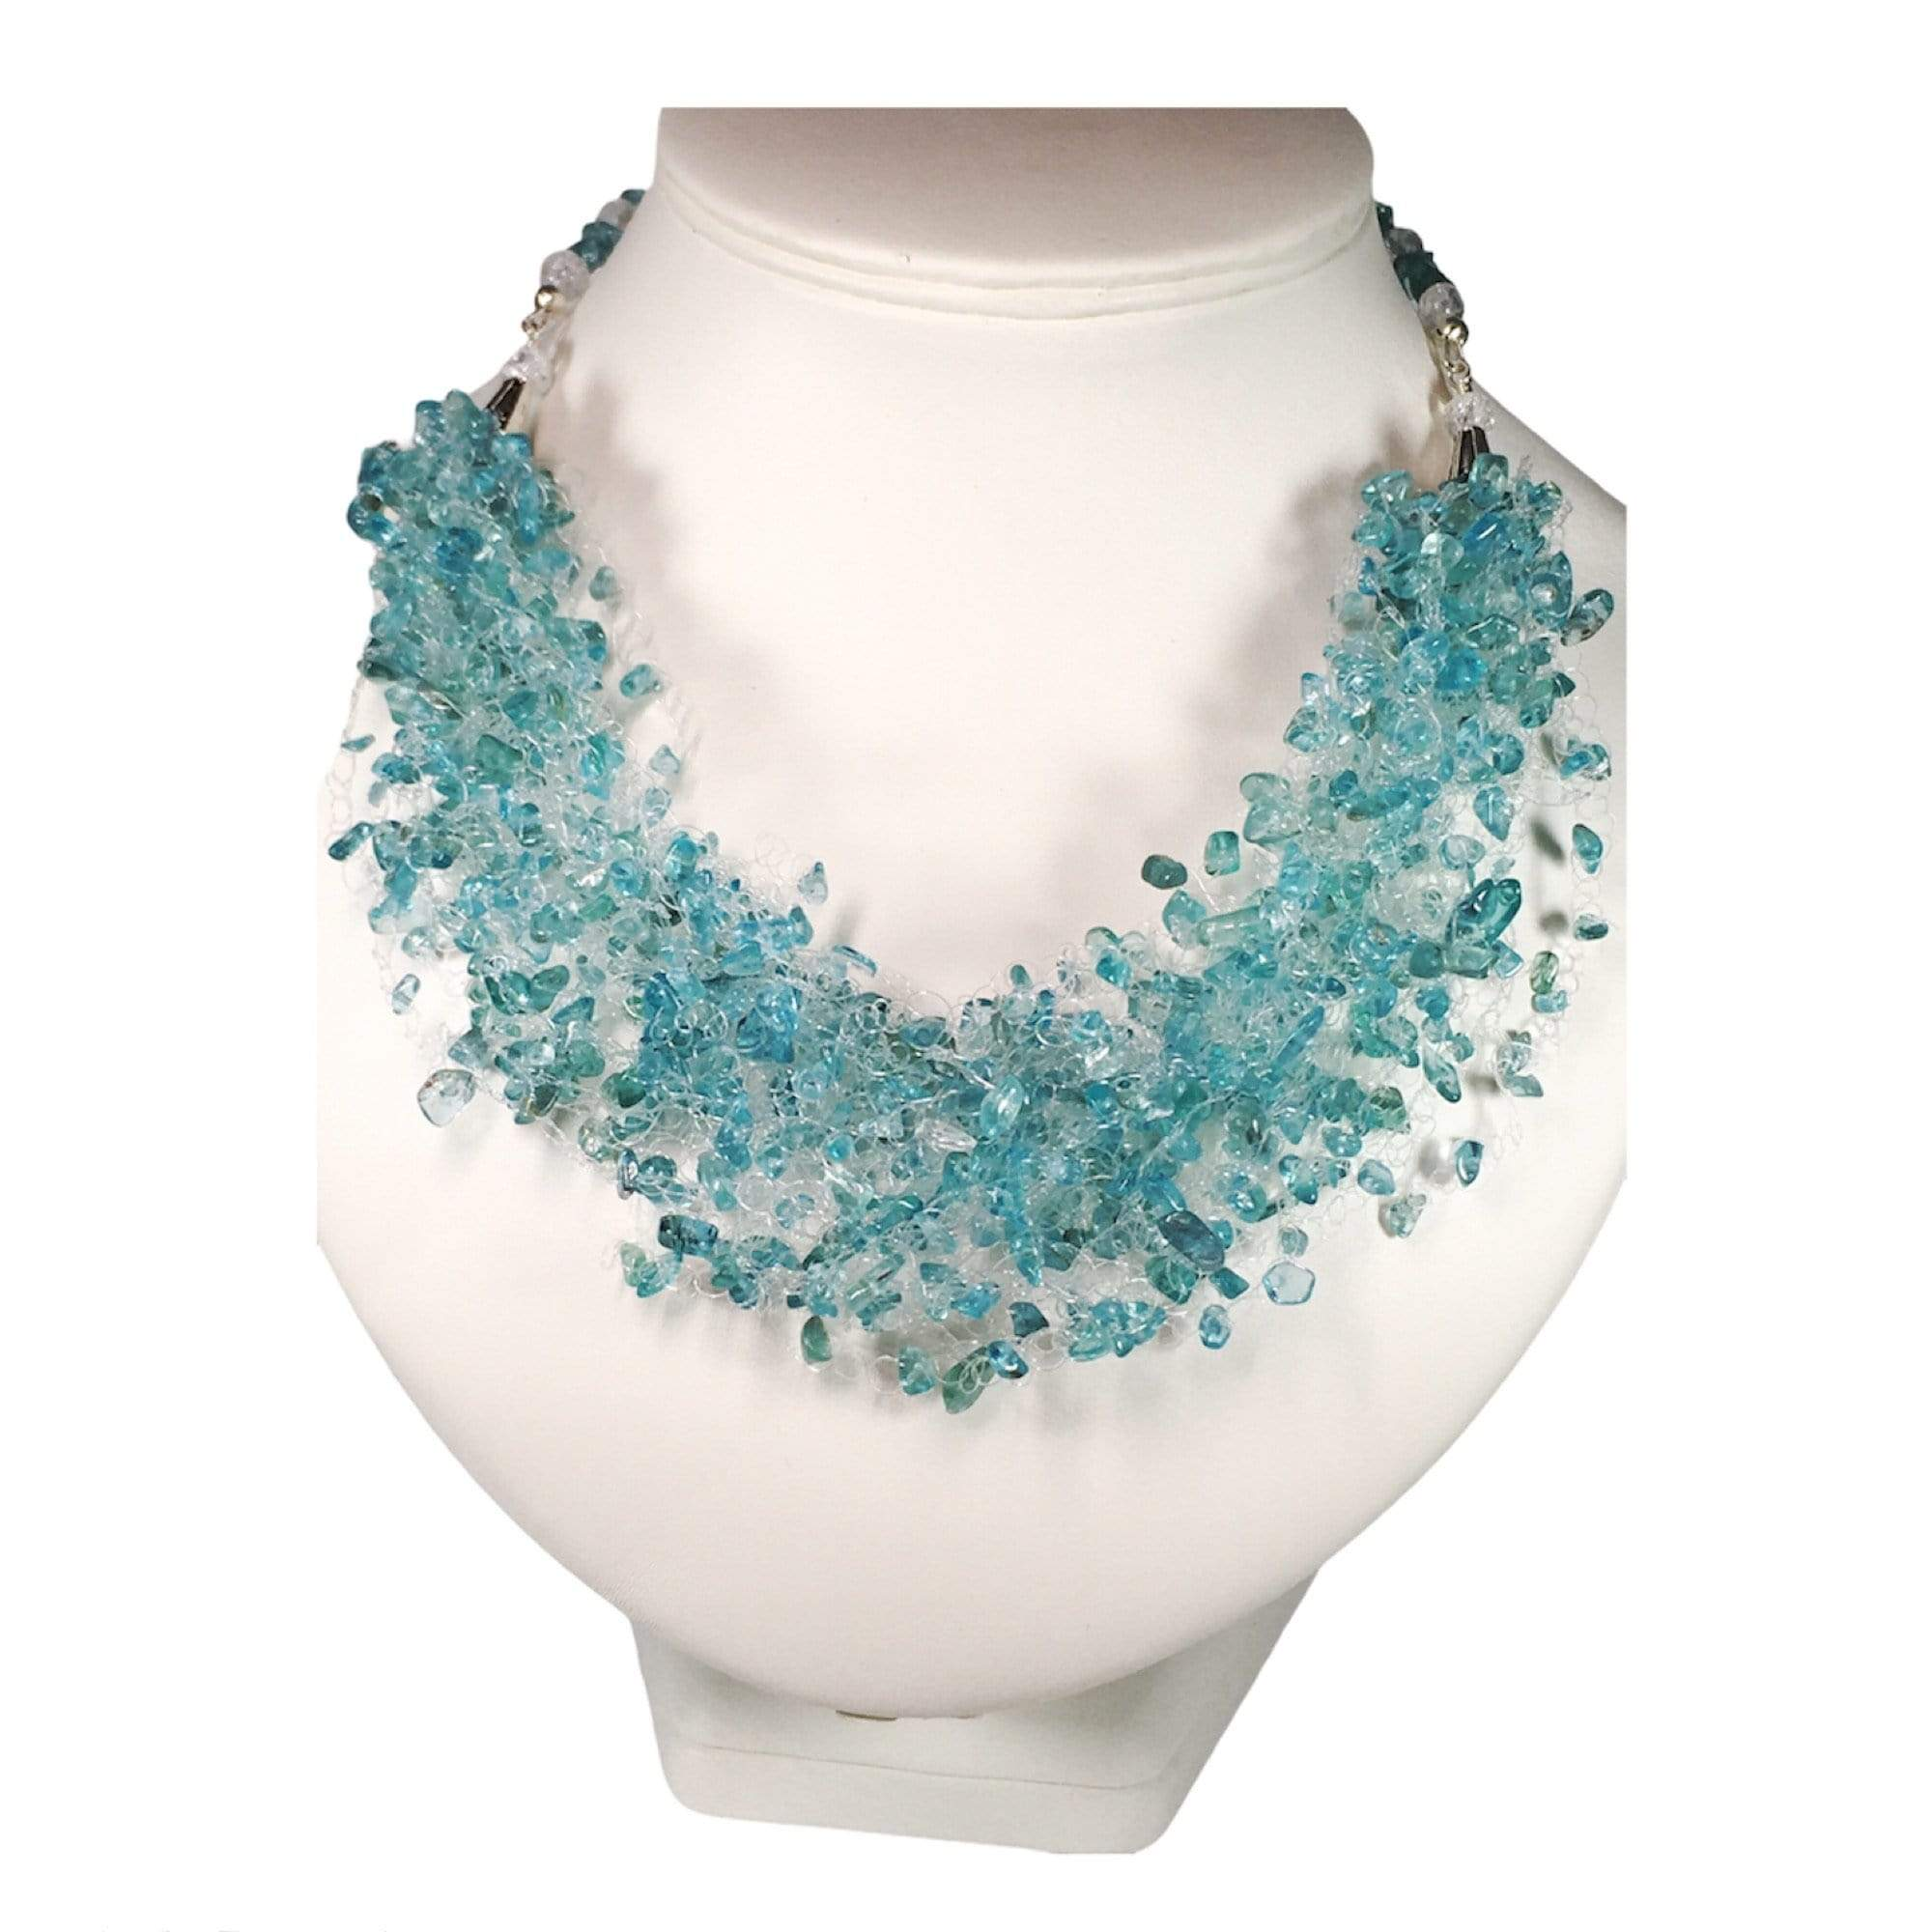 Handmade Apatite Gemstone Air Necklace